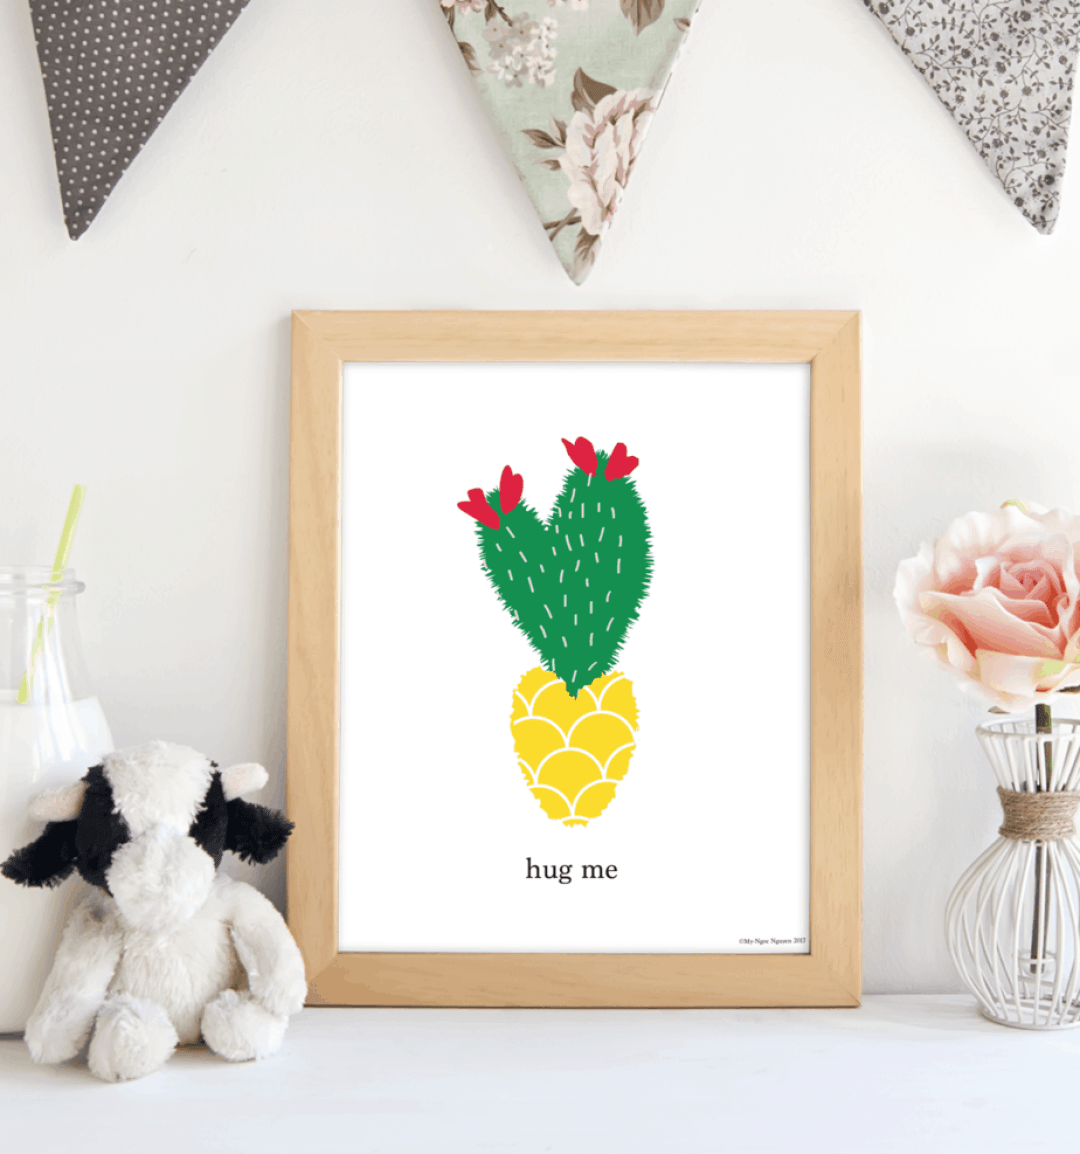 Pineapple Cactus.shabbymintchicparty.etsy.com